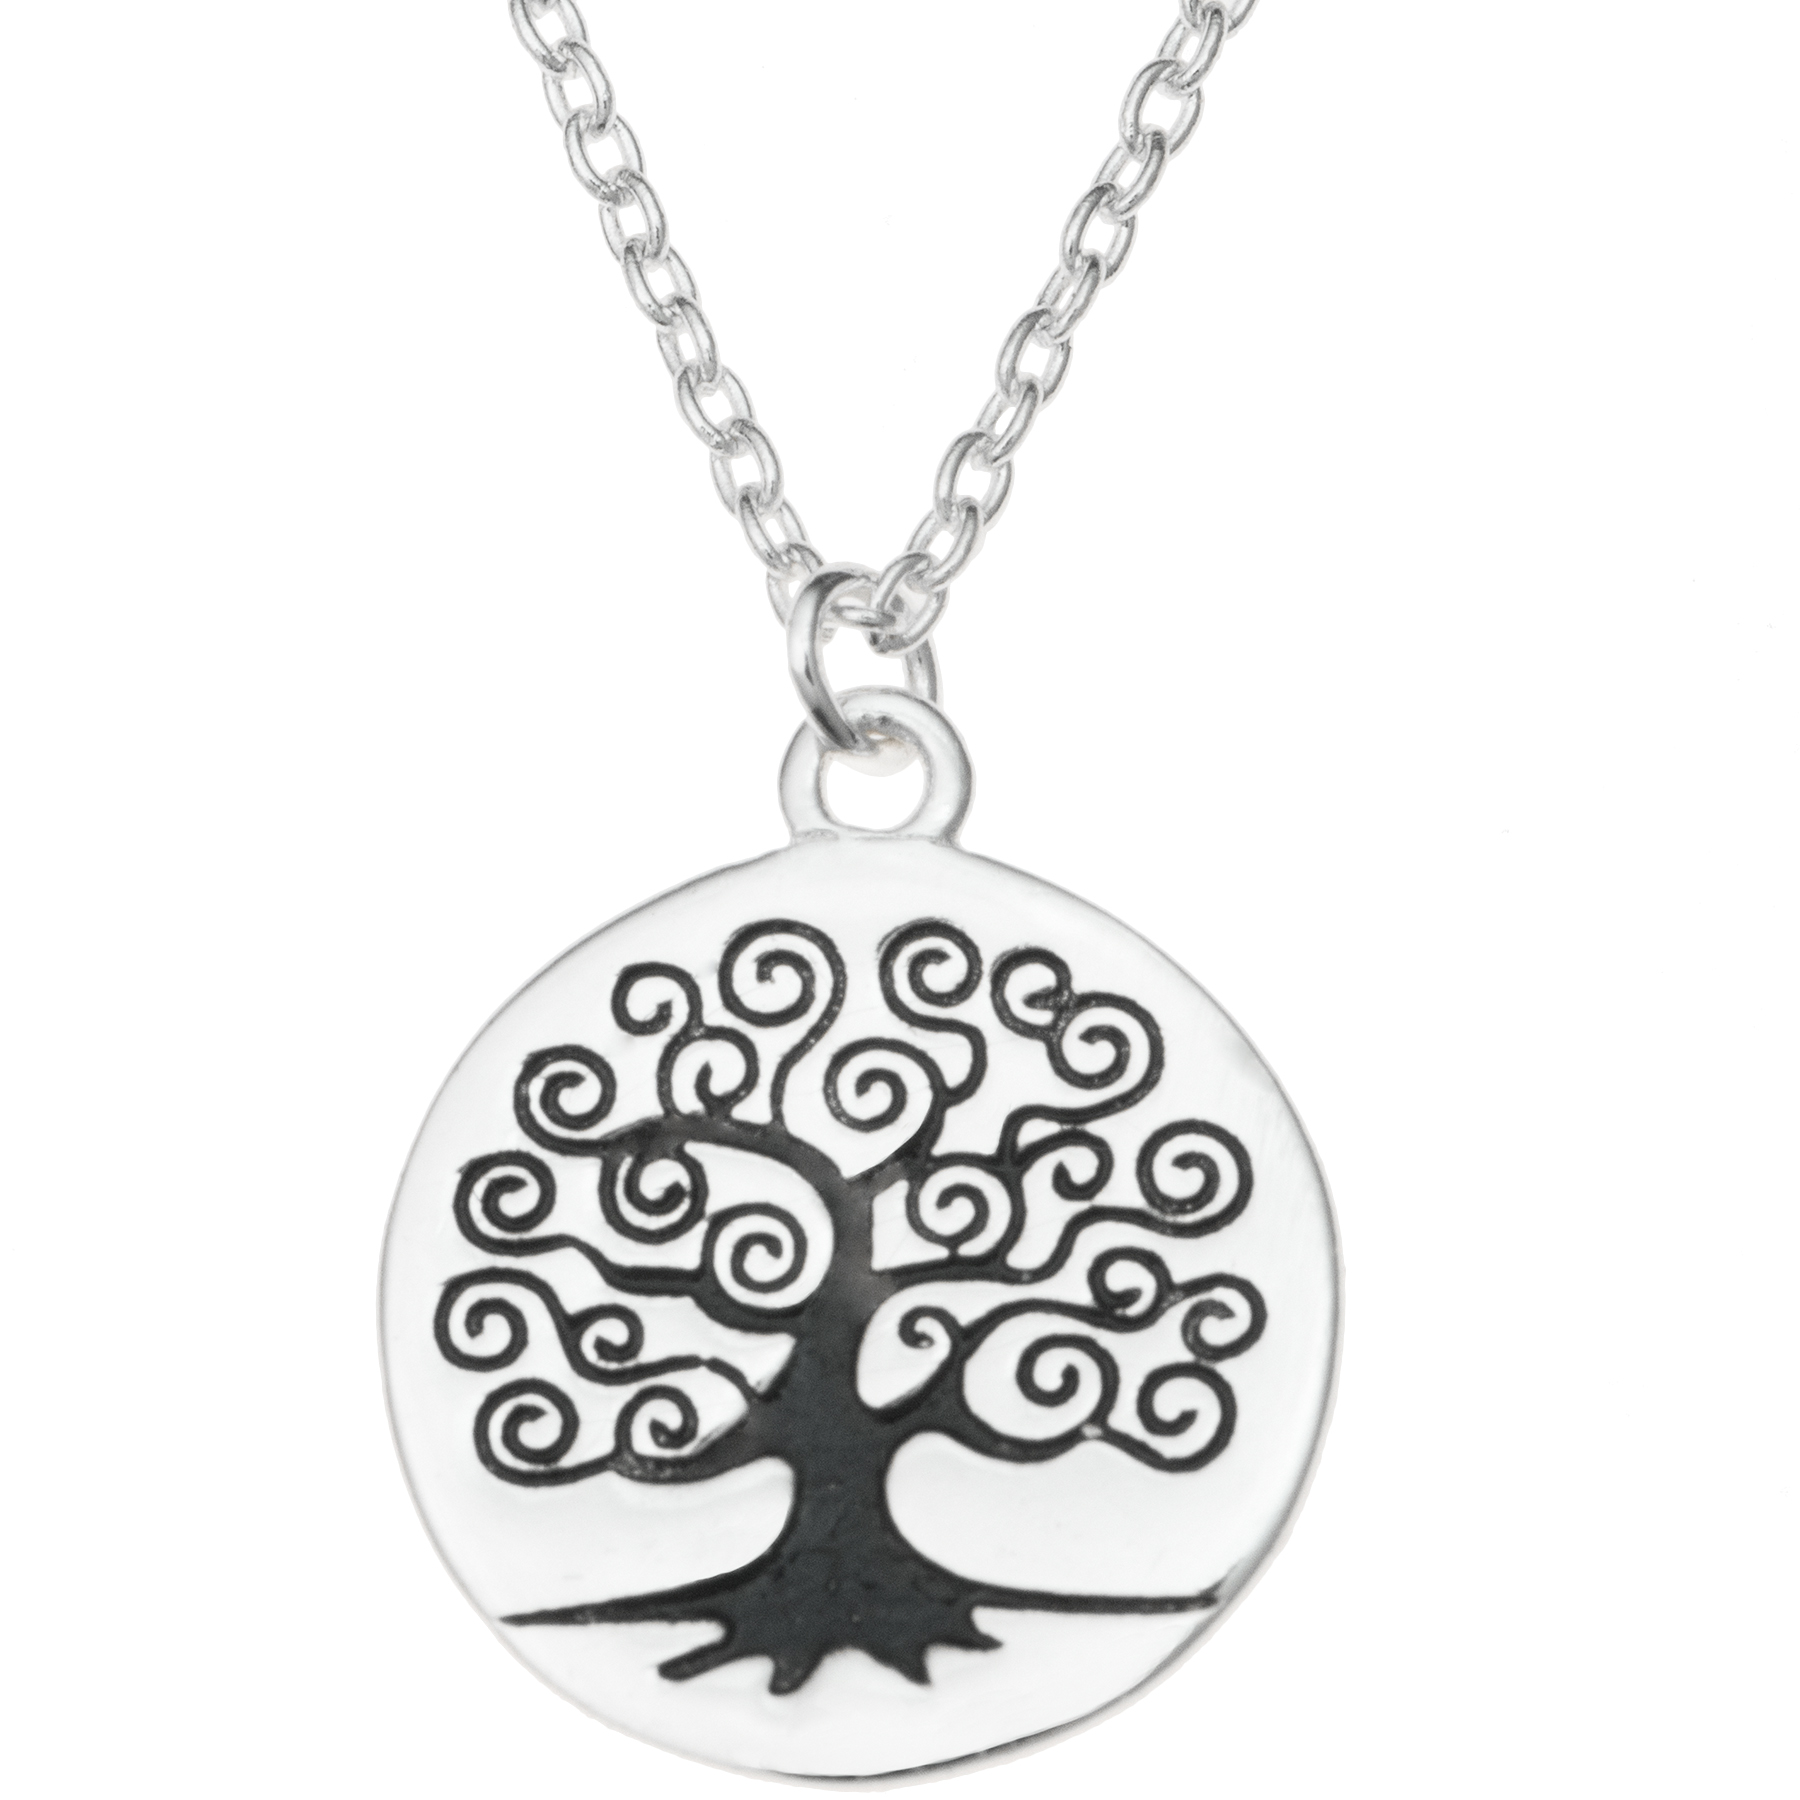 "Sterling Silver Round Family Tree Dangle Charm Pendant Rolo Chain Necklace 16"" + 1"" Extender"